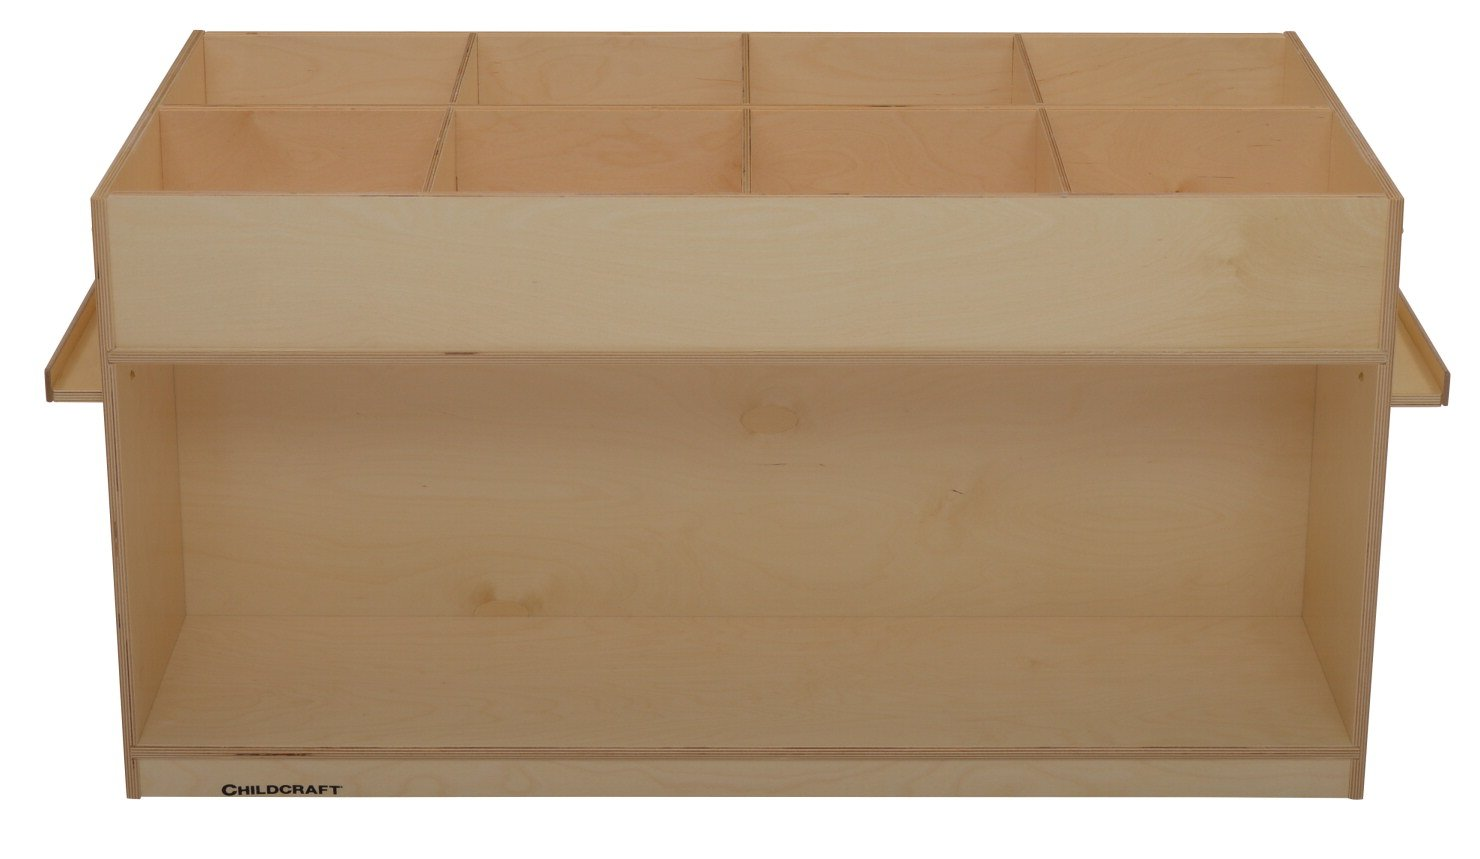 Childcraft 071912 Double Sided Mobile Book Center, Birch Veneer Panel, Acrylic, 52-3/4'' x 23-1/4'' x 25-5/8'', Natural Wood Tone